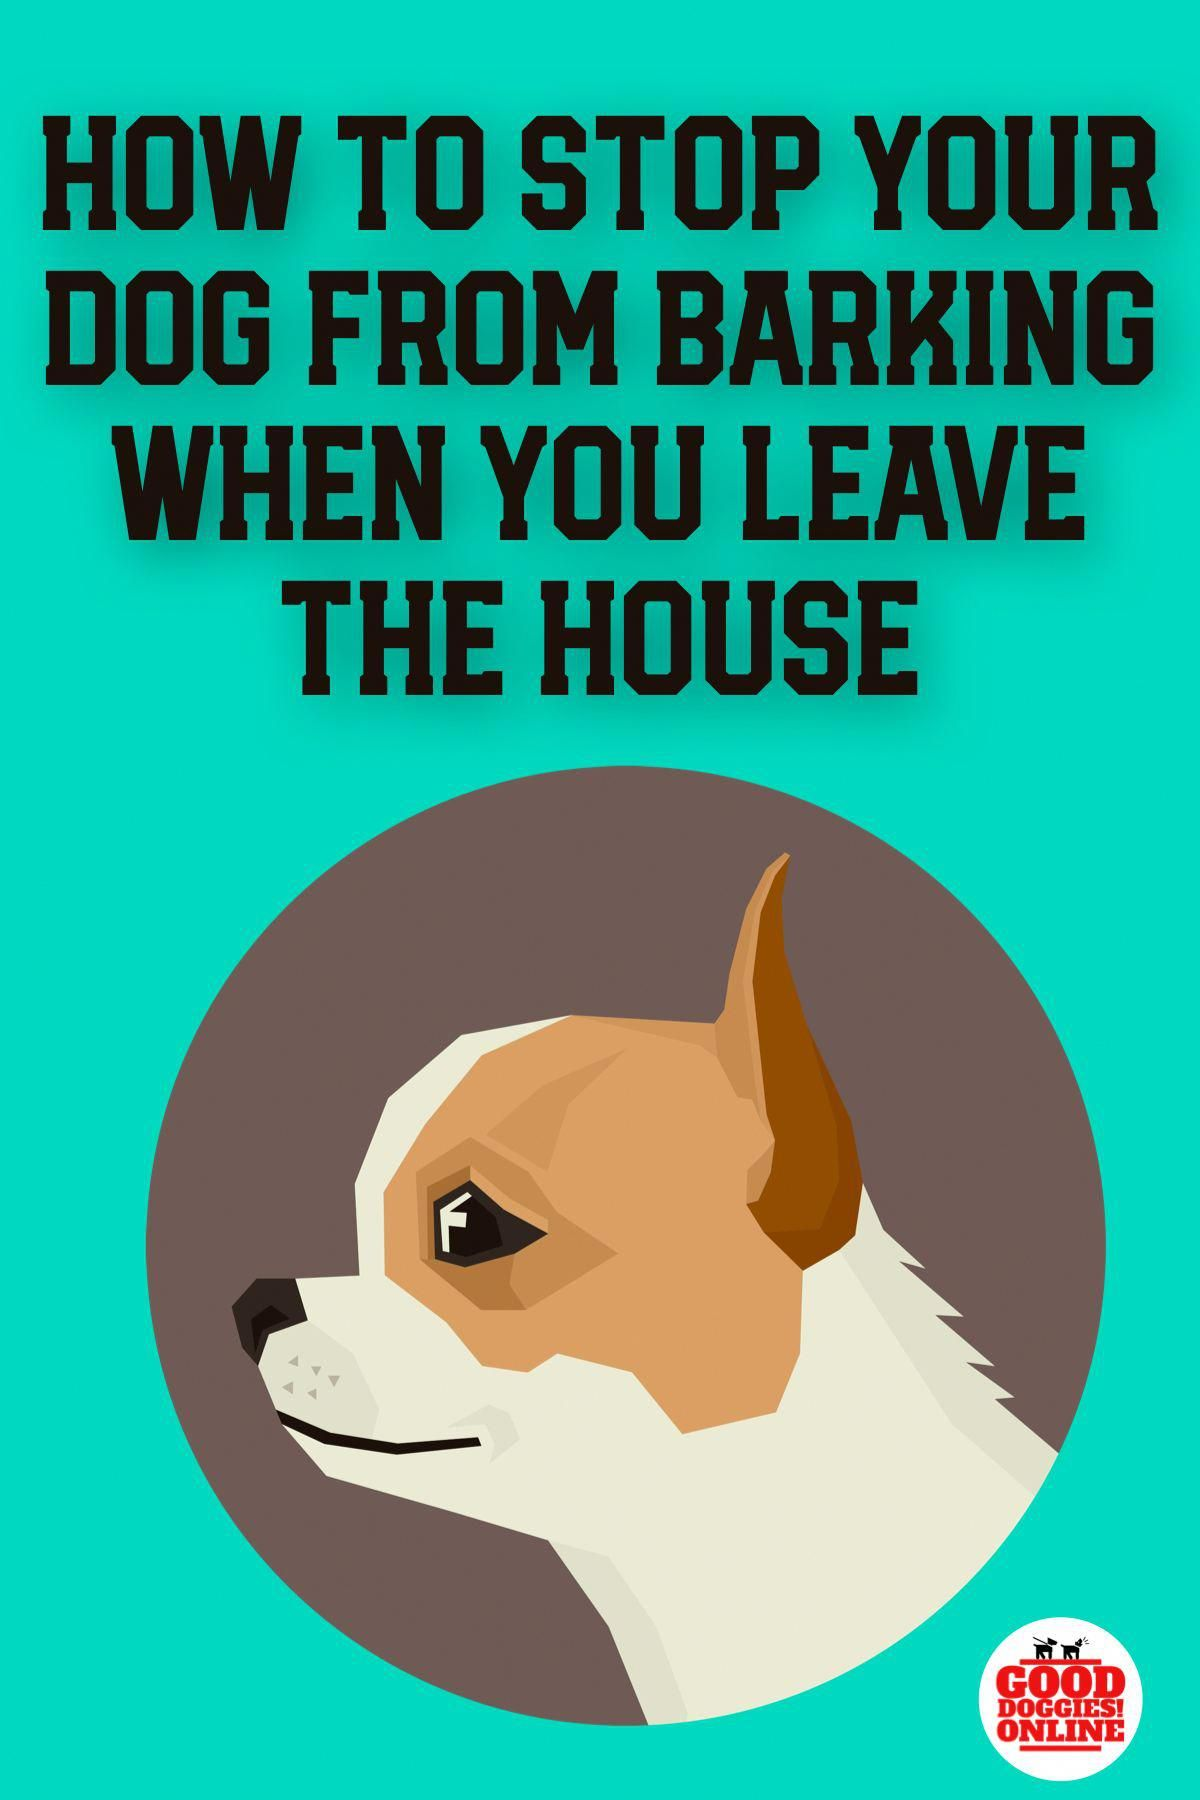 Stop your dog from barking when you leave the house with these dog